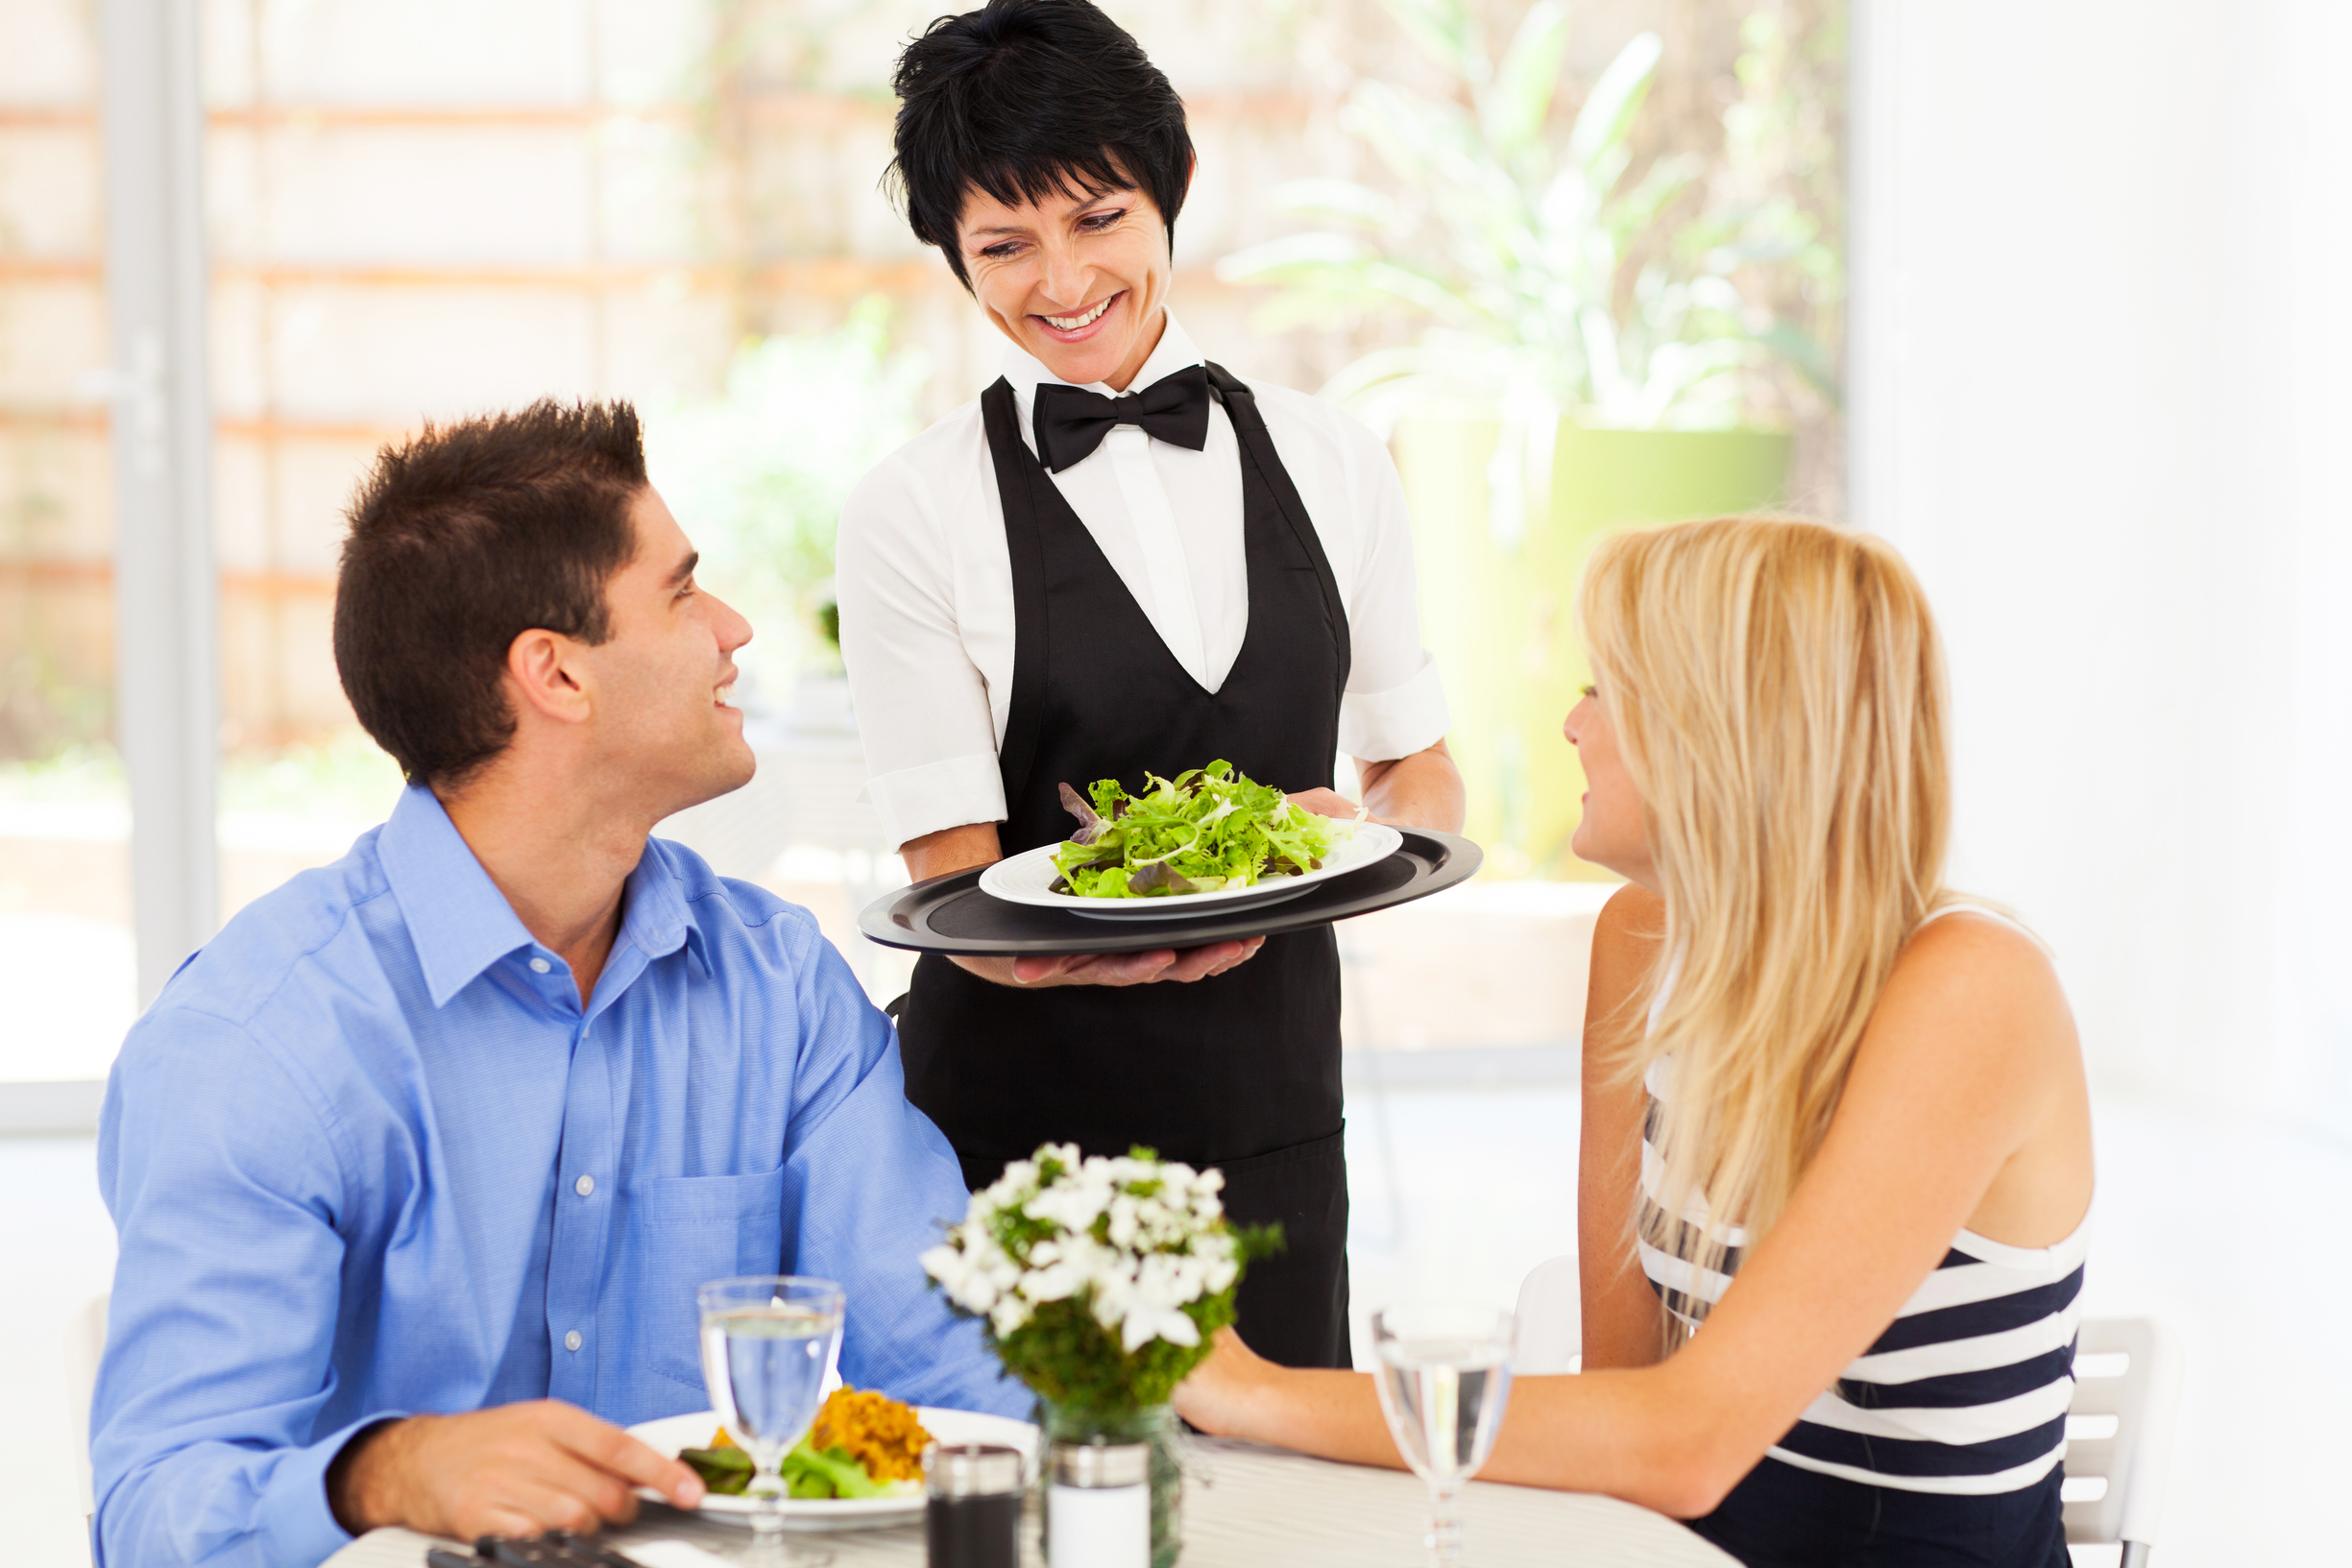 That S Biz Survey Proves That Restaurant Stakeout Is Right